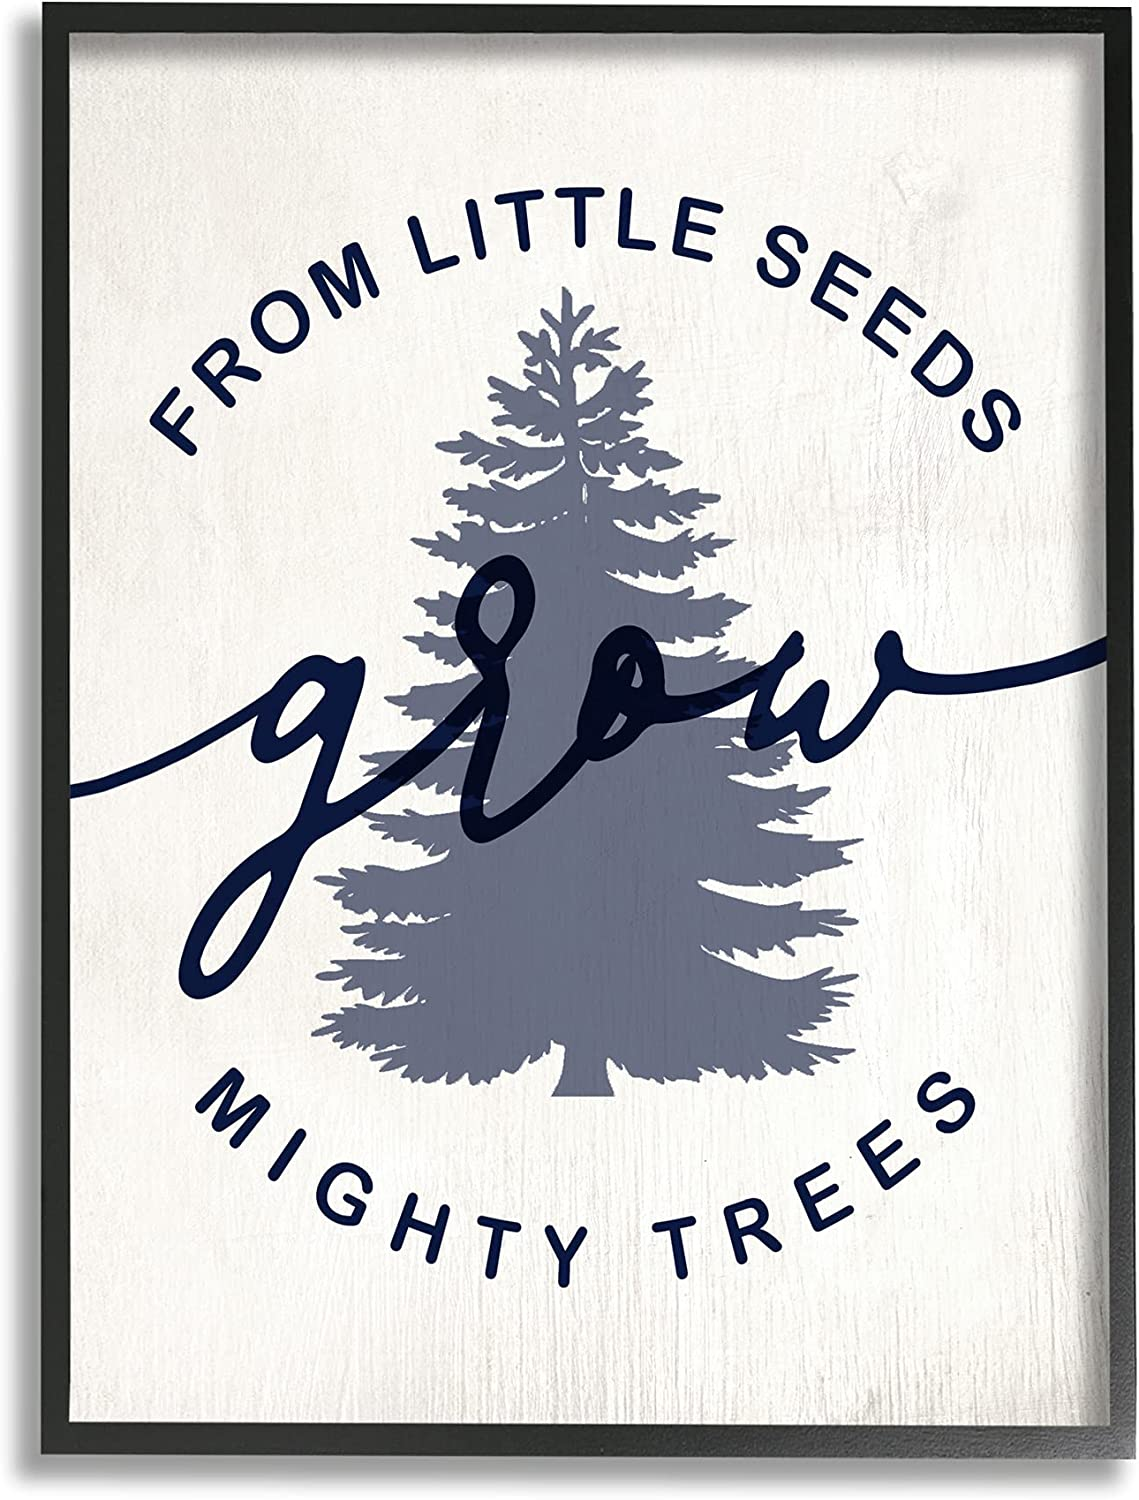 Stupell Industries Albuquerque Mall Little Seeds Grow Gorgeous Trees Blue Mighty Sentiment